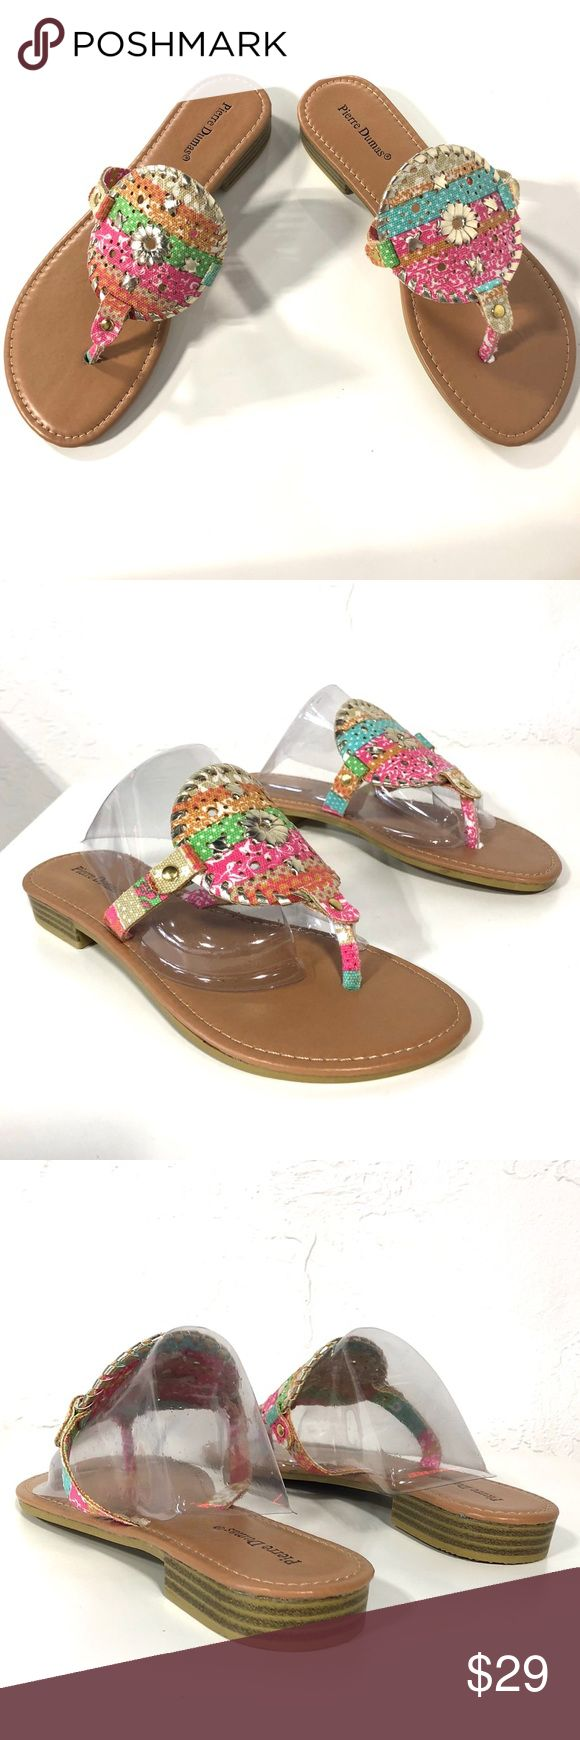 Pierre Dumas Pastel Gold Pink Sandals Flip flops Comfortable and beautiful sandals by Pierre Dumas. Pink, orange, green, blue, beige and gold colors on fabric emblem. Medium width and true to size. Pierre Dumas Shoes Sandals